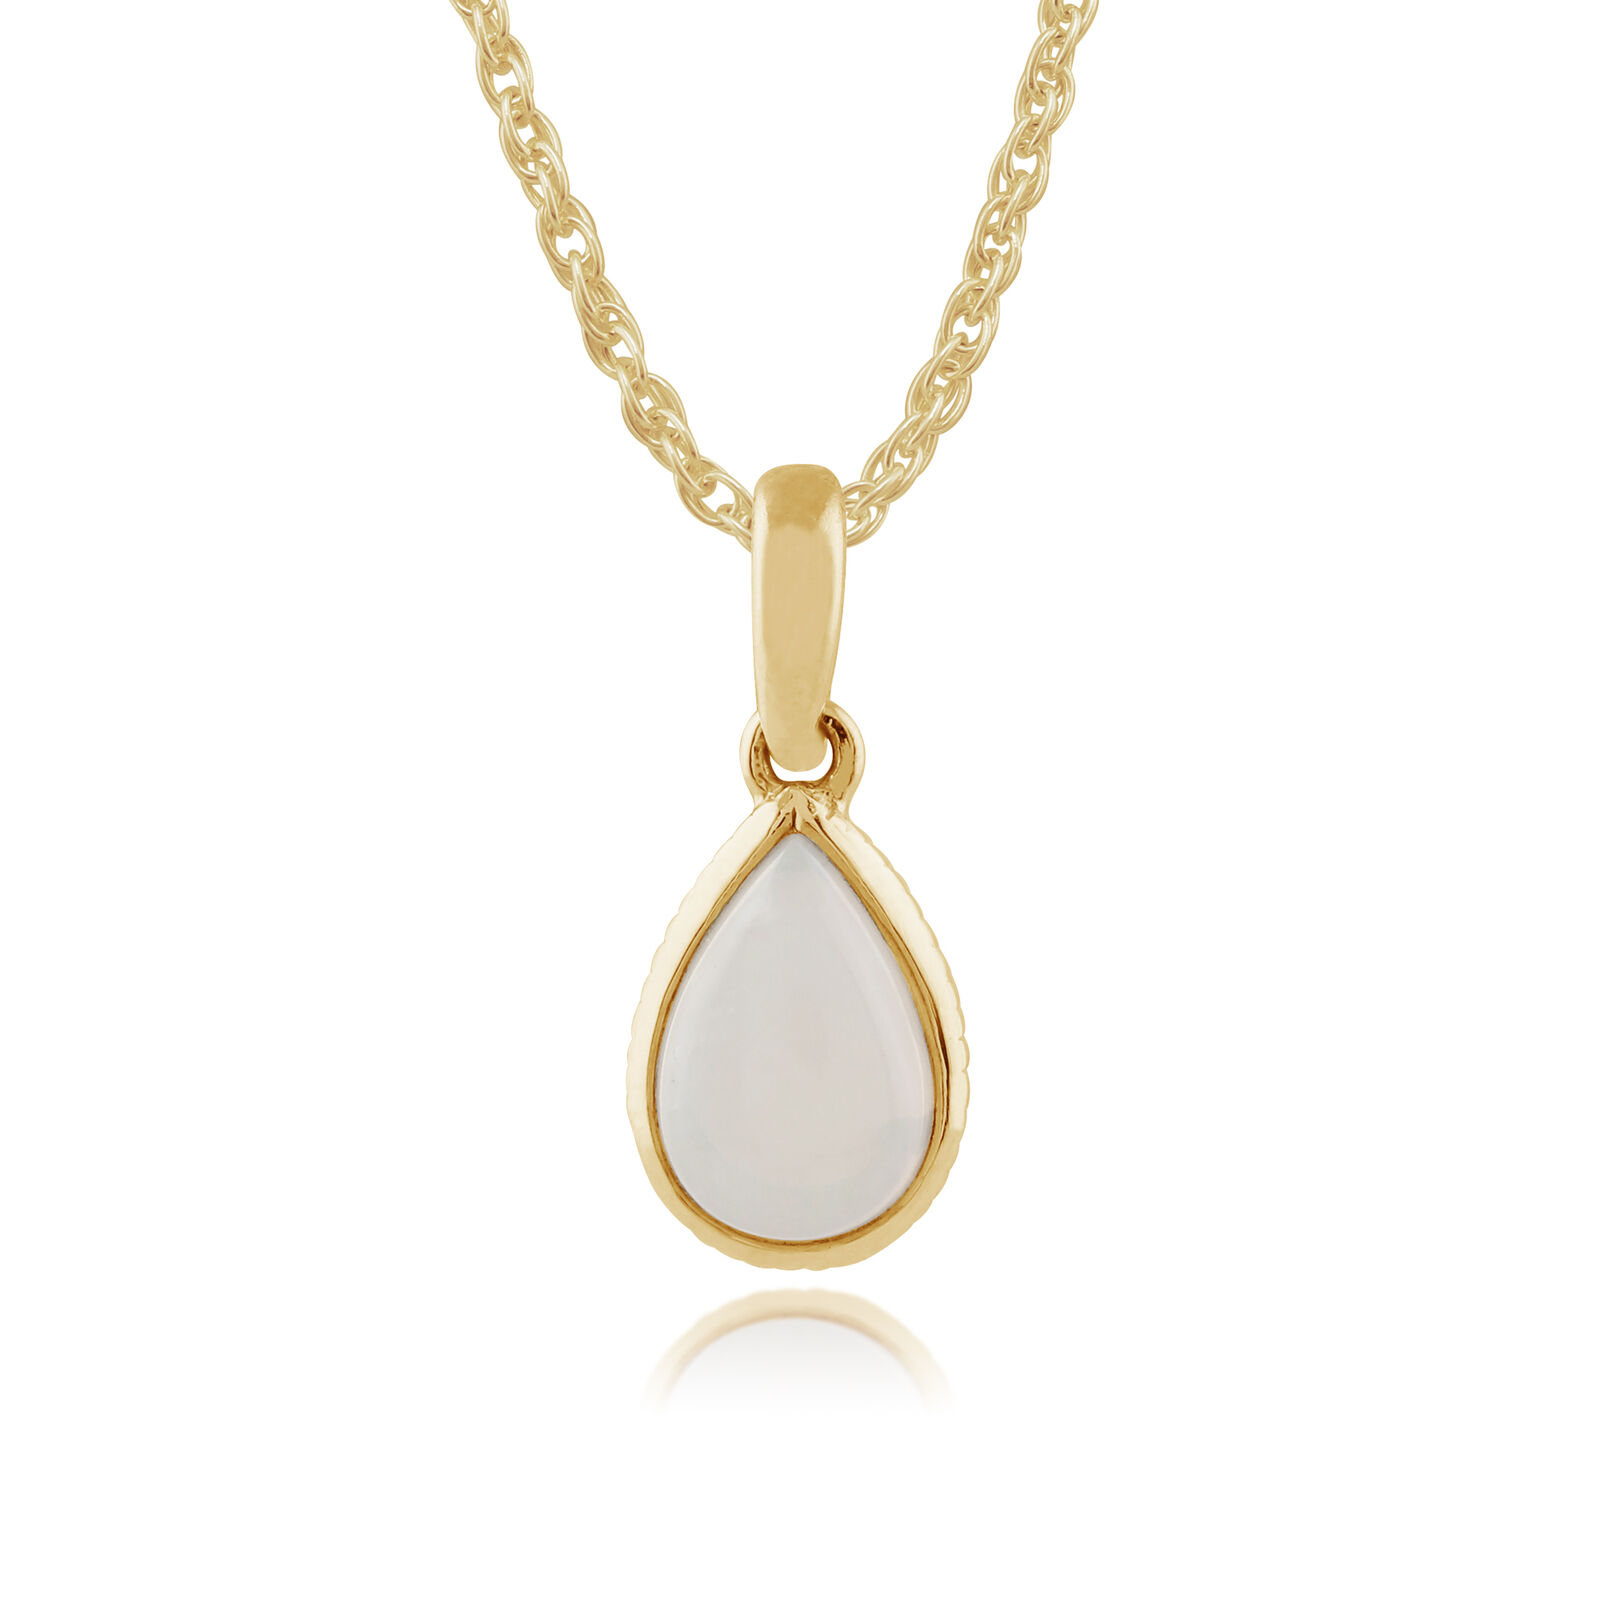 Gemondo 9ct Yellow gold 0.25ct Opal Pear Framed Pendant on Chain